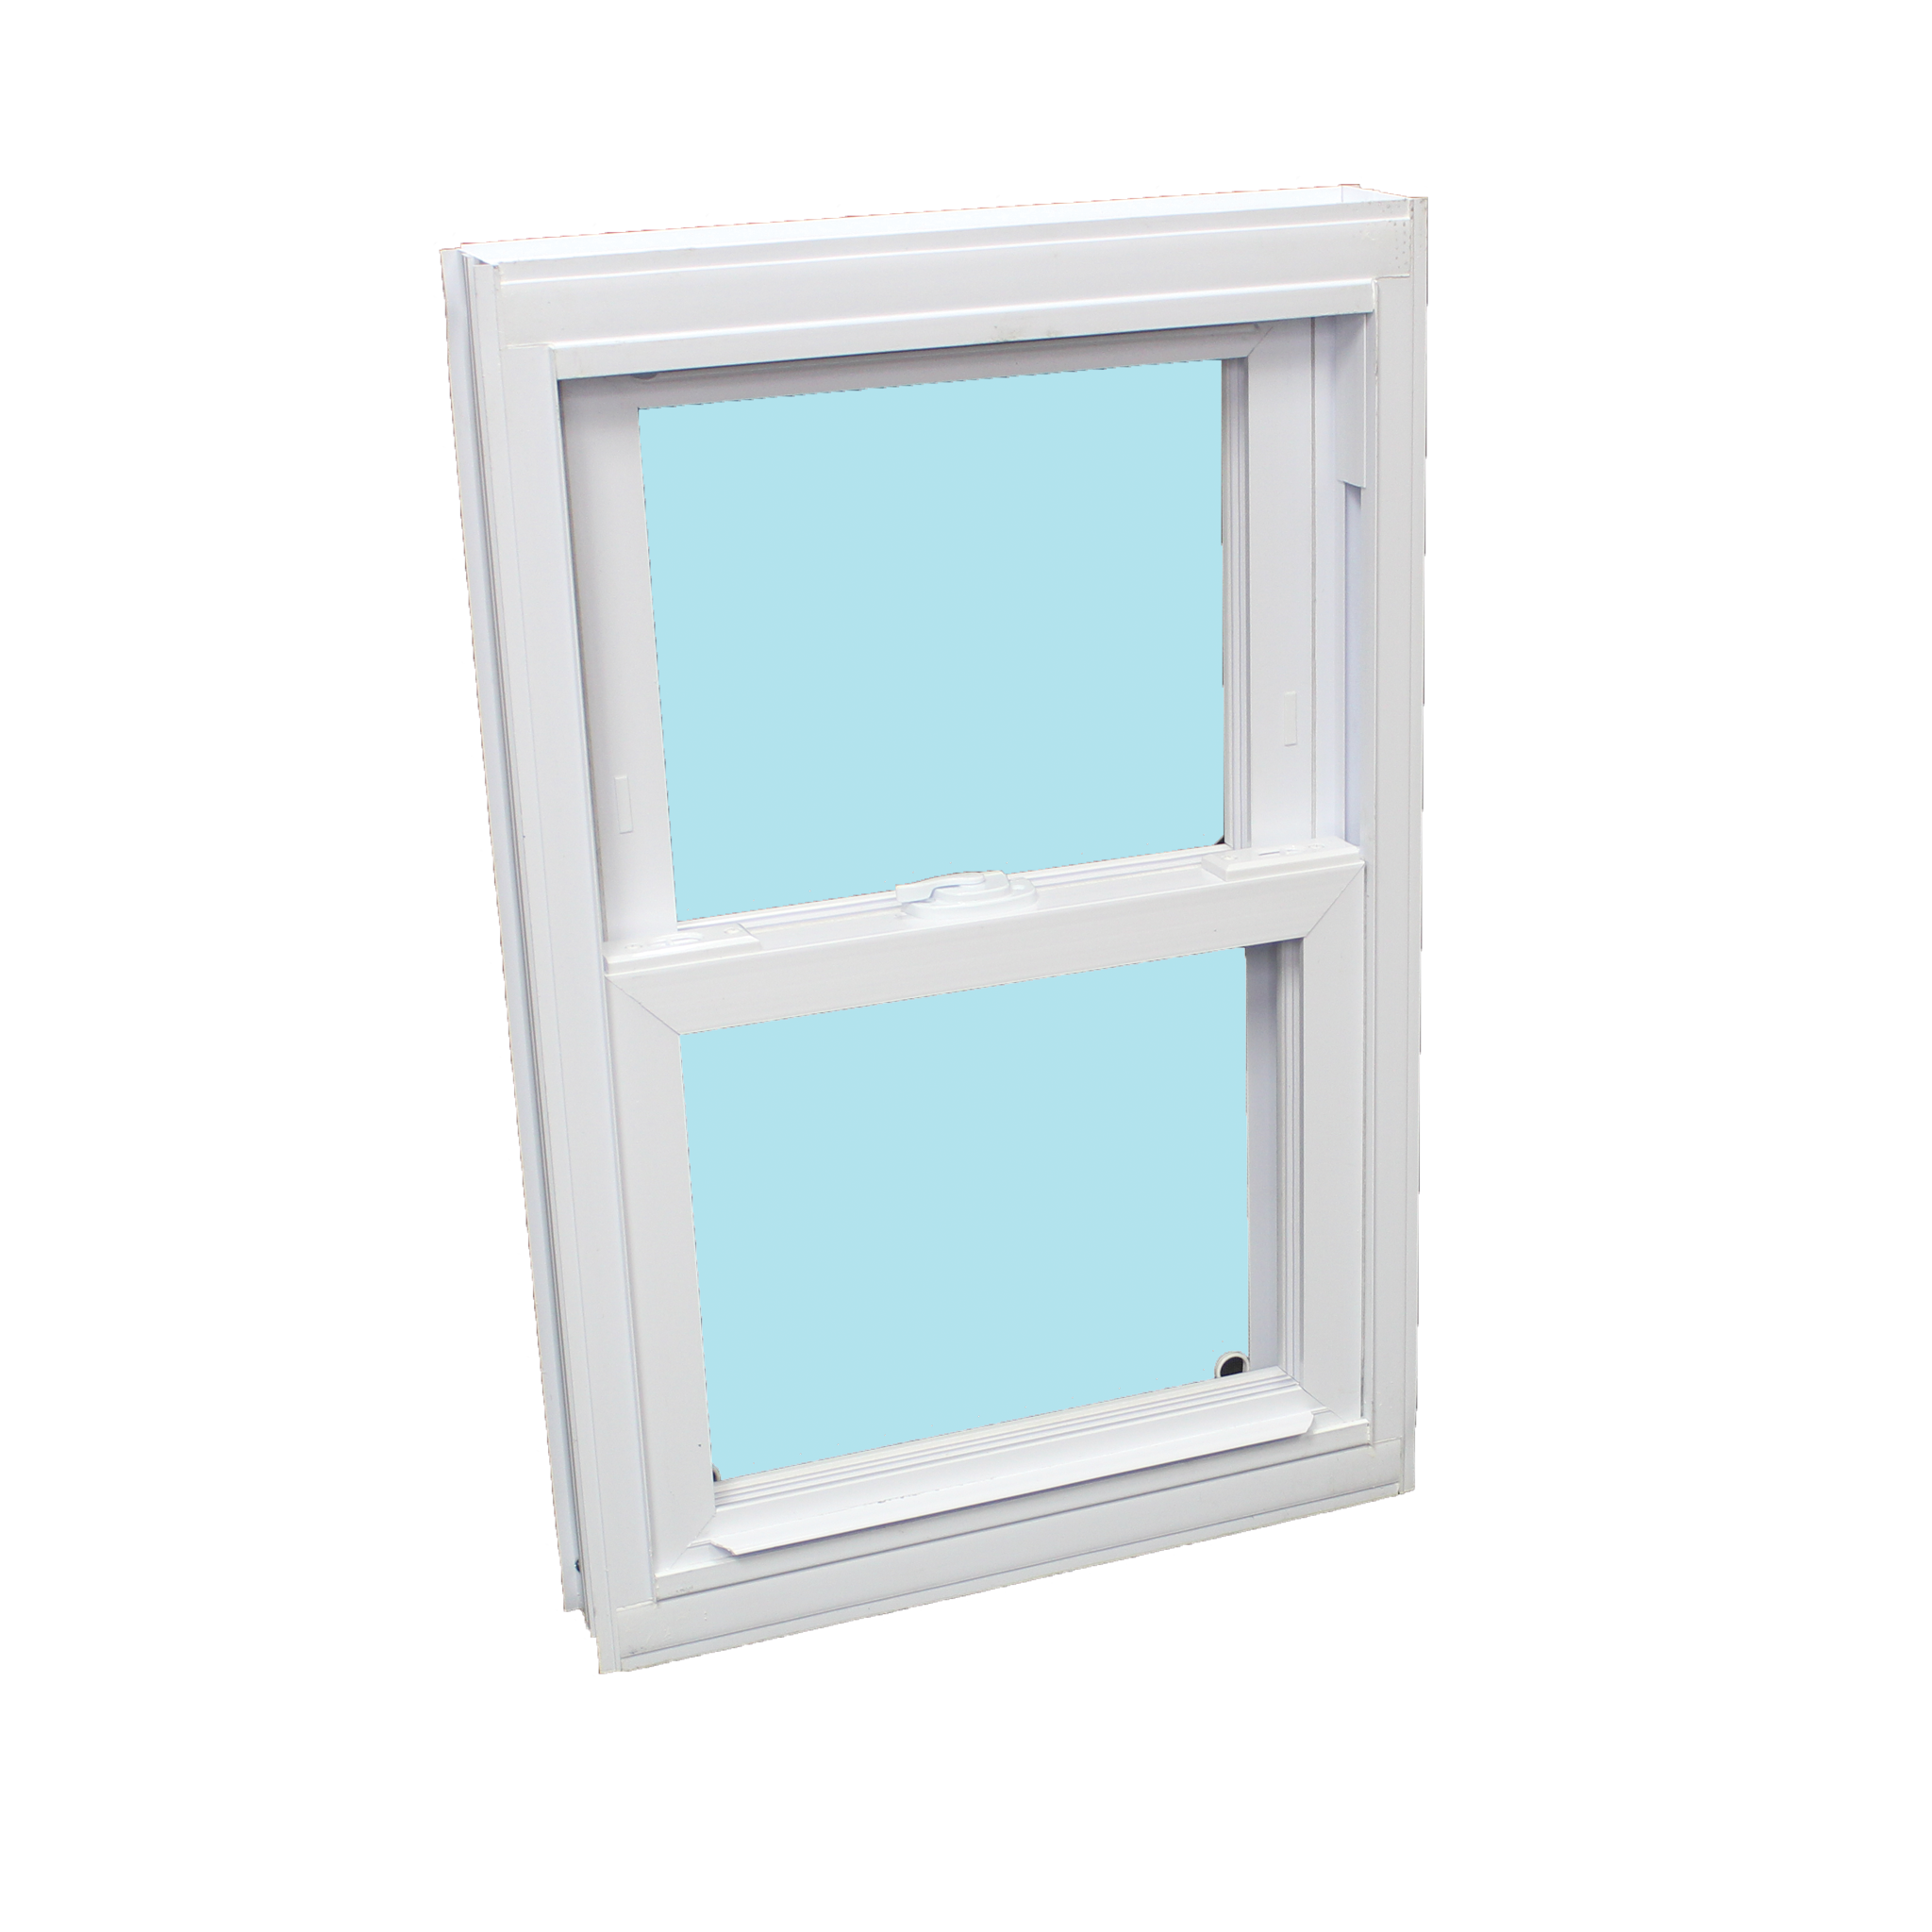 DH100 - REPLACEMENT DOUBLE MECHANICAL FRAME & SASH Image